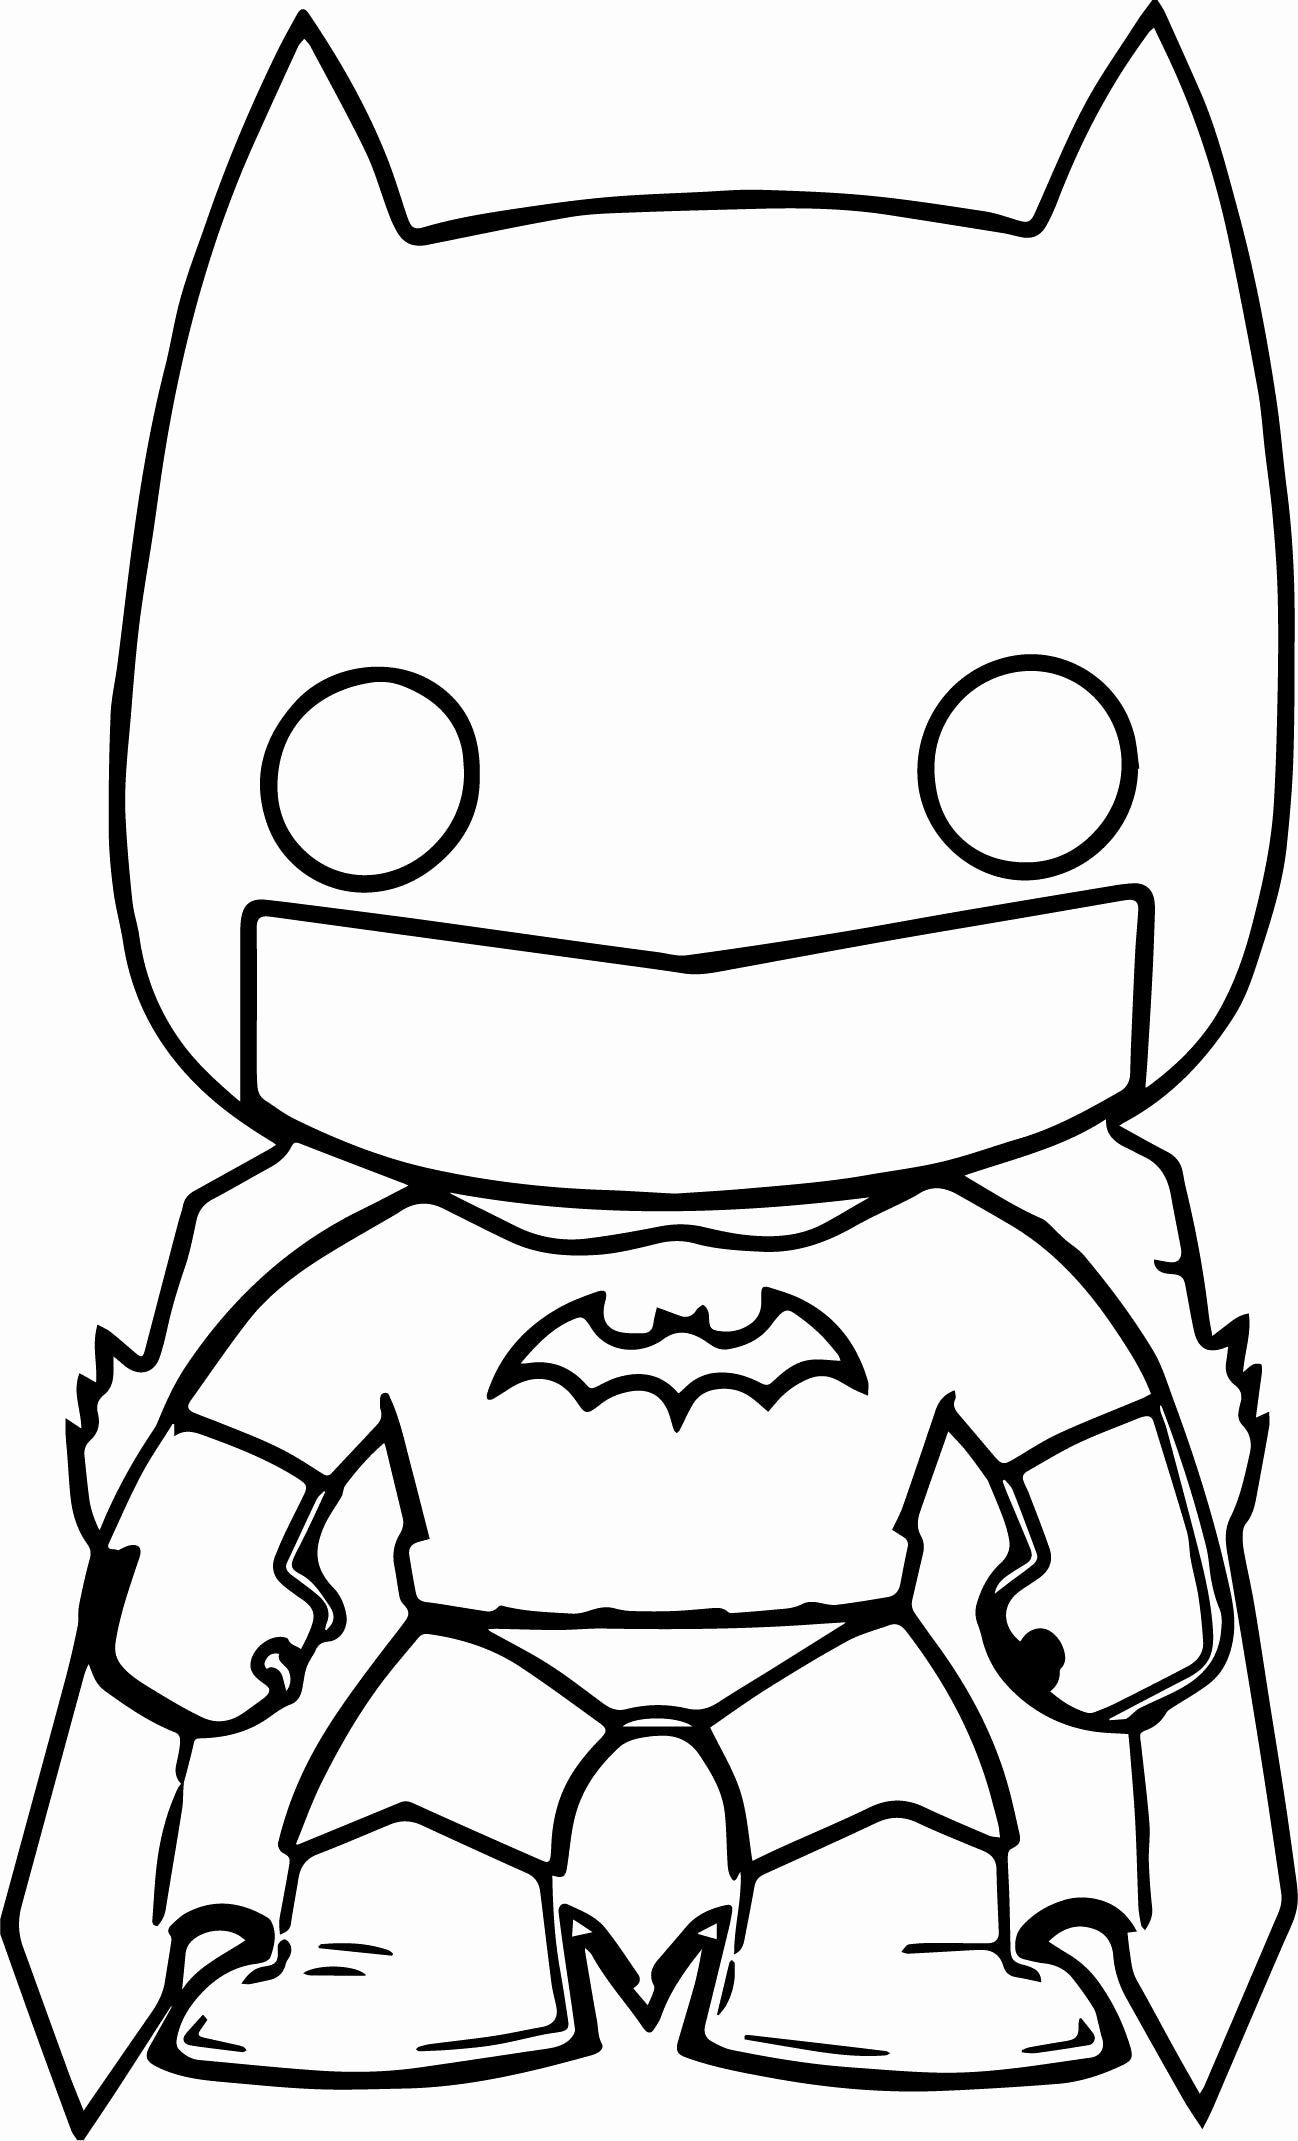 Action Figures Coloring Pages Lovely Deadpool Funko Pop Coloring Pages In 2020 Batman Coloring Pages Superhero Coloring Pages Superhero Coloring